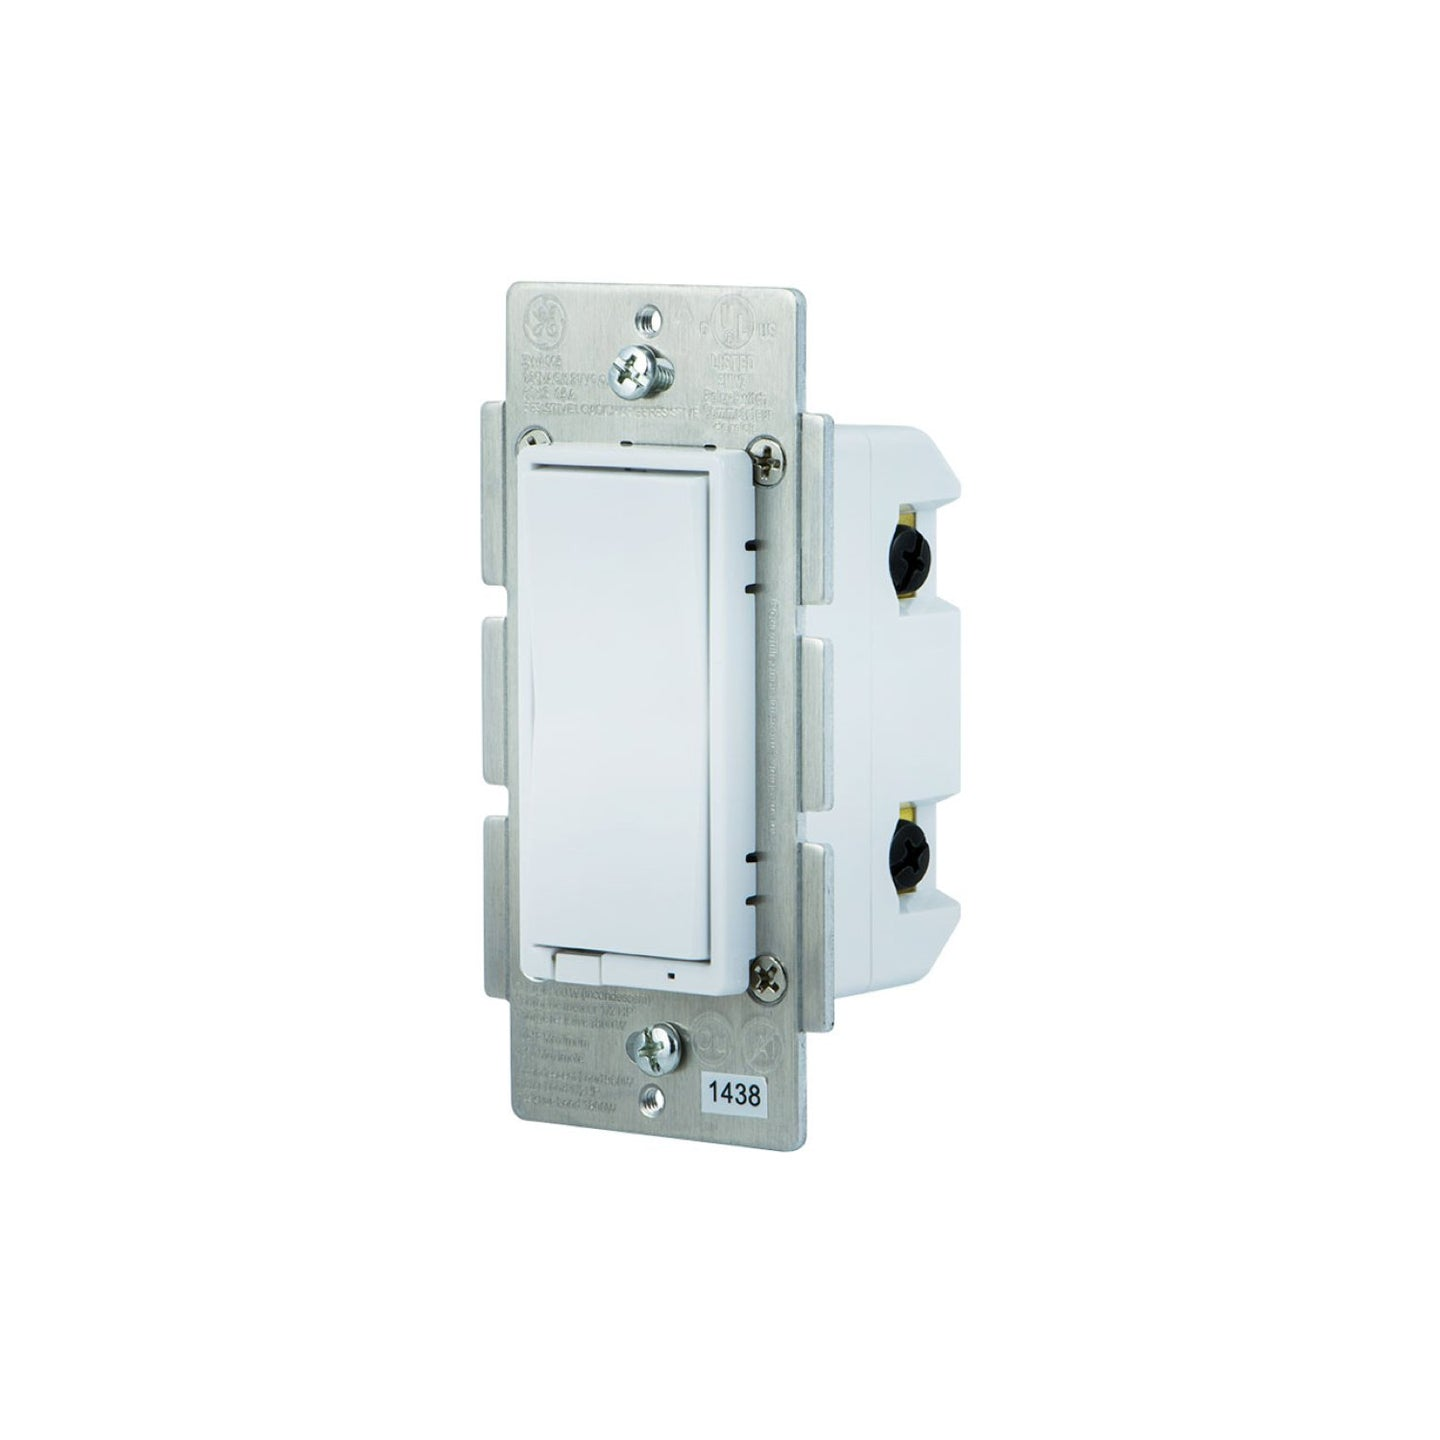 GE In-Wall Paddle Dimmer (for Works with Ring Alarm Security System)